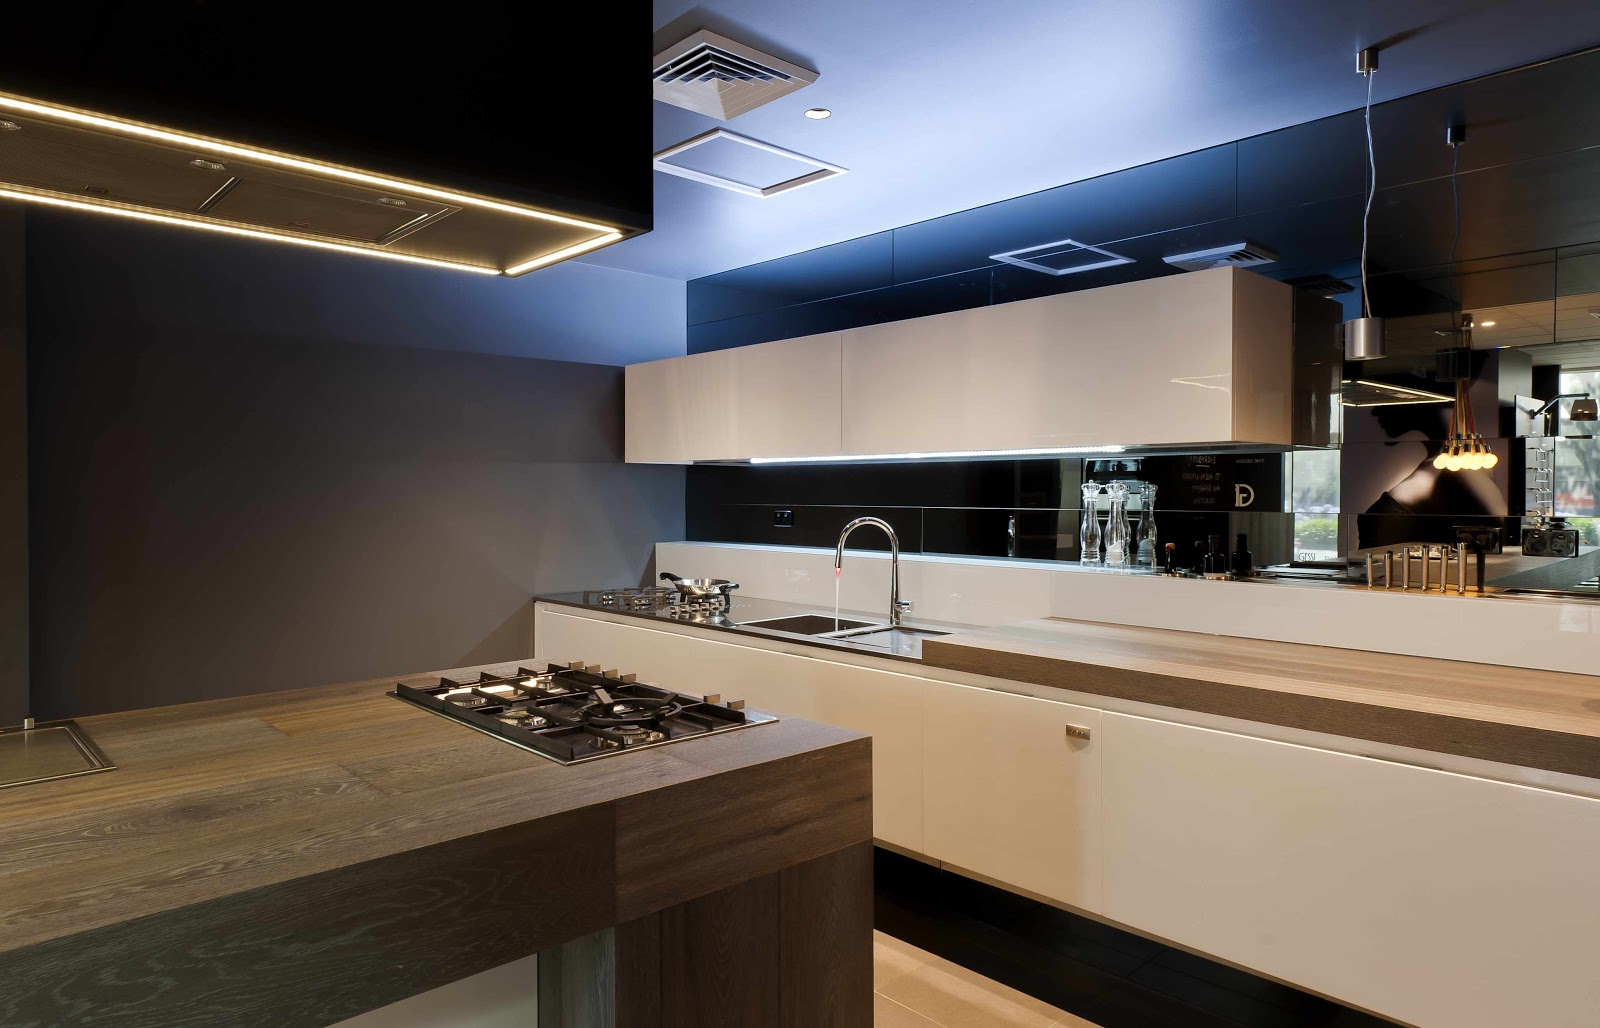 Gentil Created For Abey Australia In Their Kitchen U0026 Bathroom Selection Centre.  The Brief Was To Create A Stunning Kitchen Using The Wonderful Barazza  Cooking ...